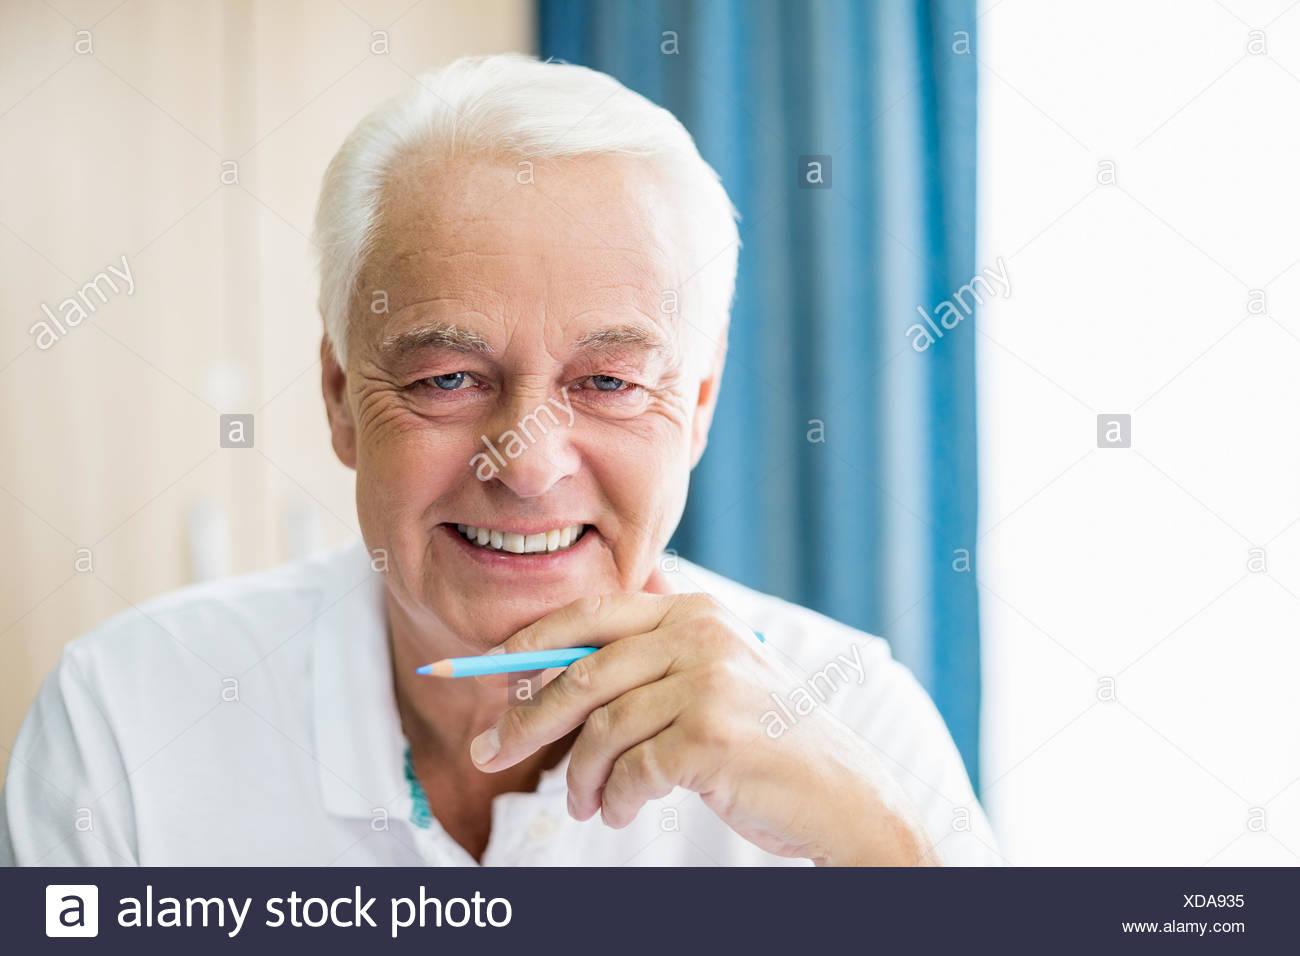 Smiling senior holding coloured pencil - Stock Image